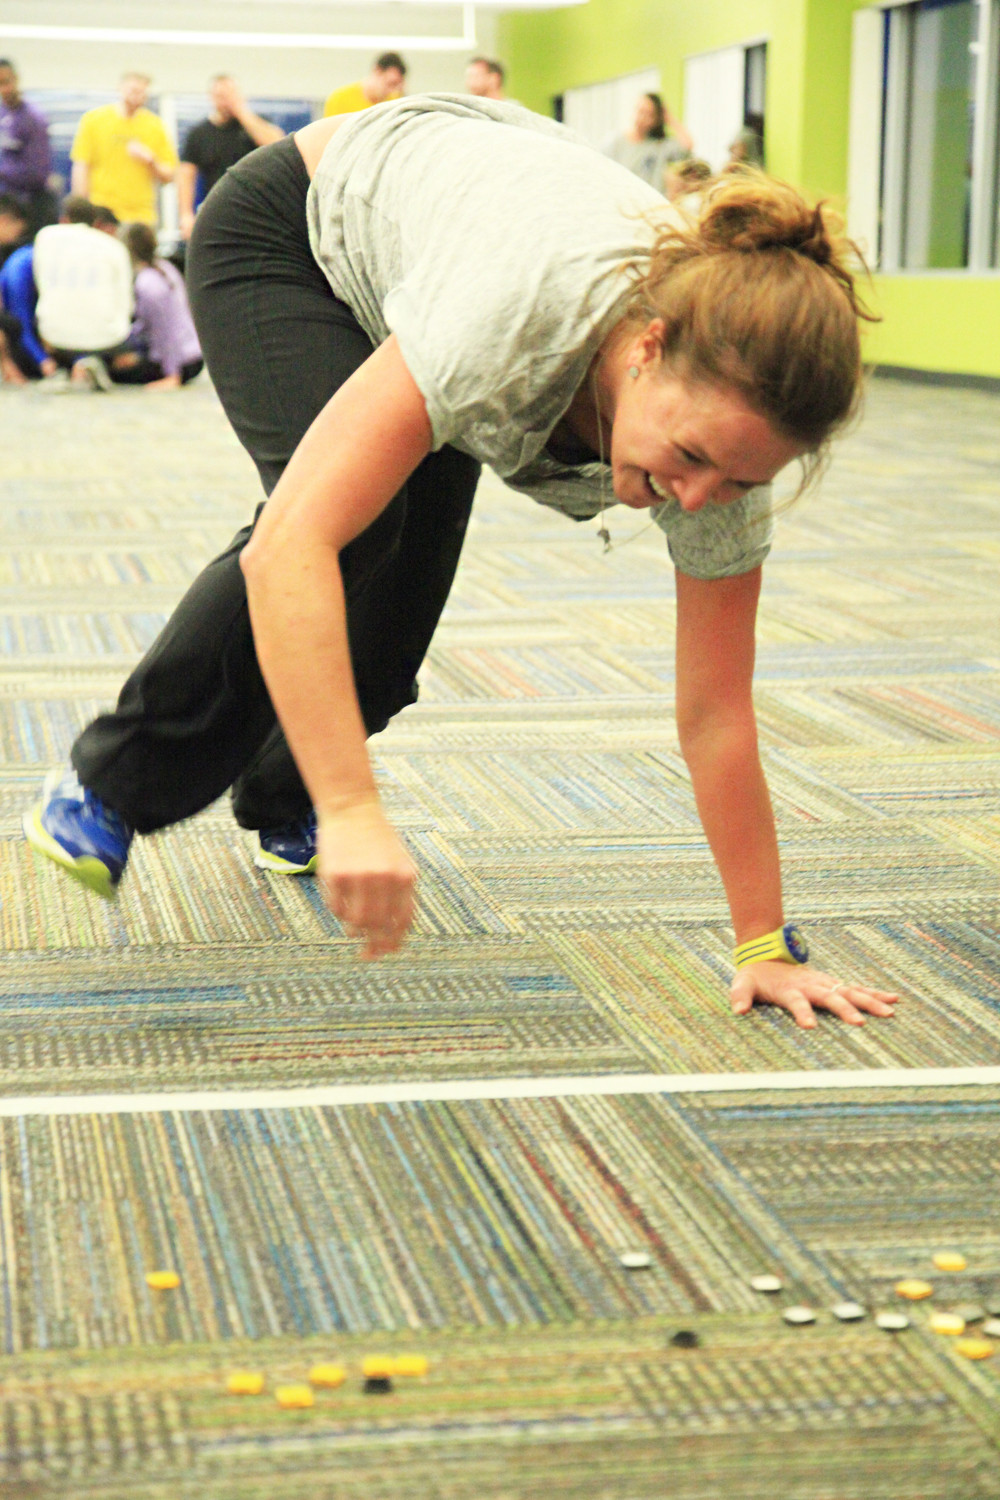 Megan Driscoll joins the rest of the Pharmalogics crew in an on-site team fitness relay race